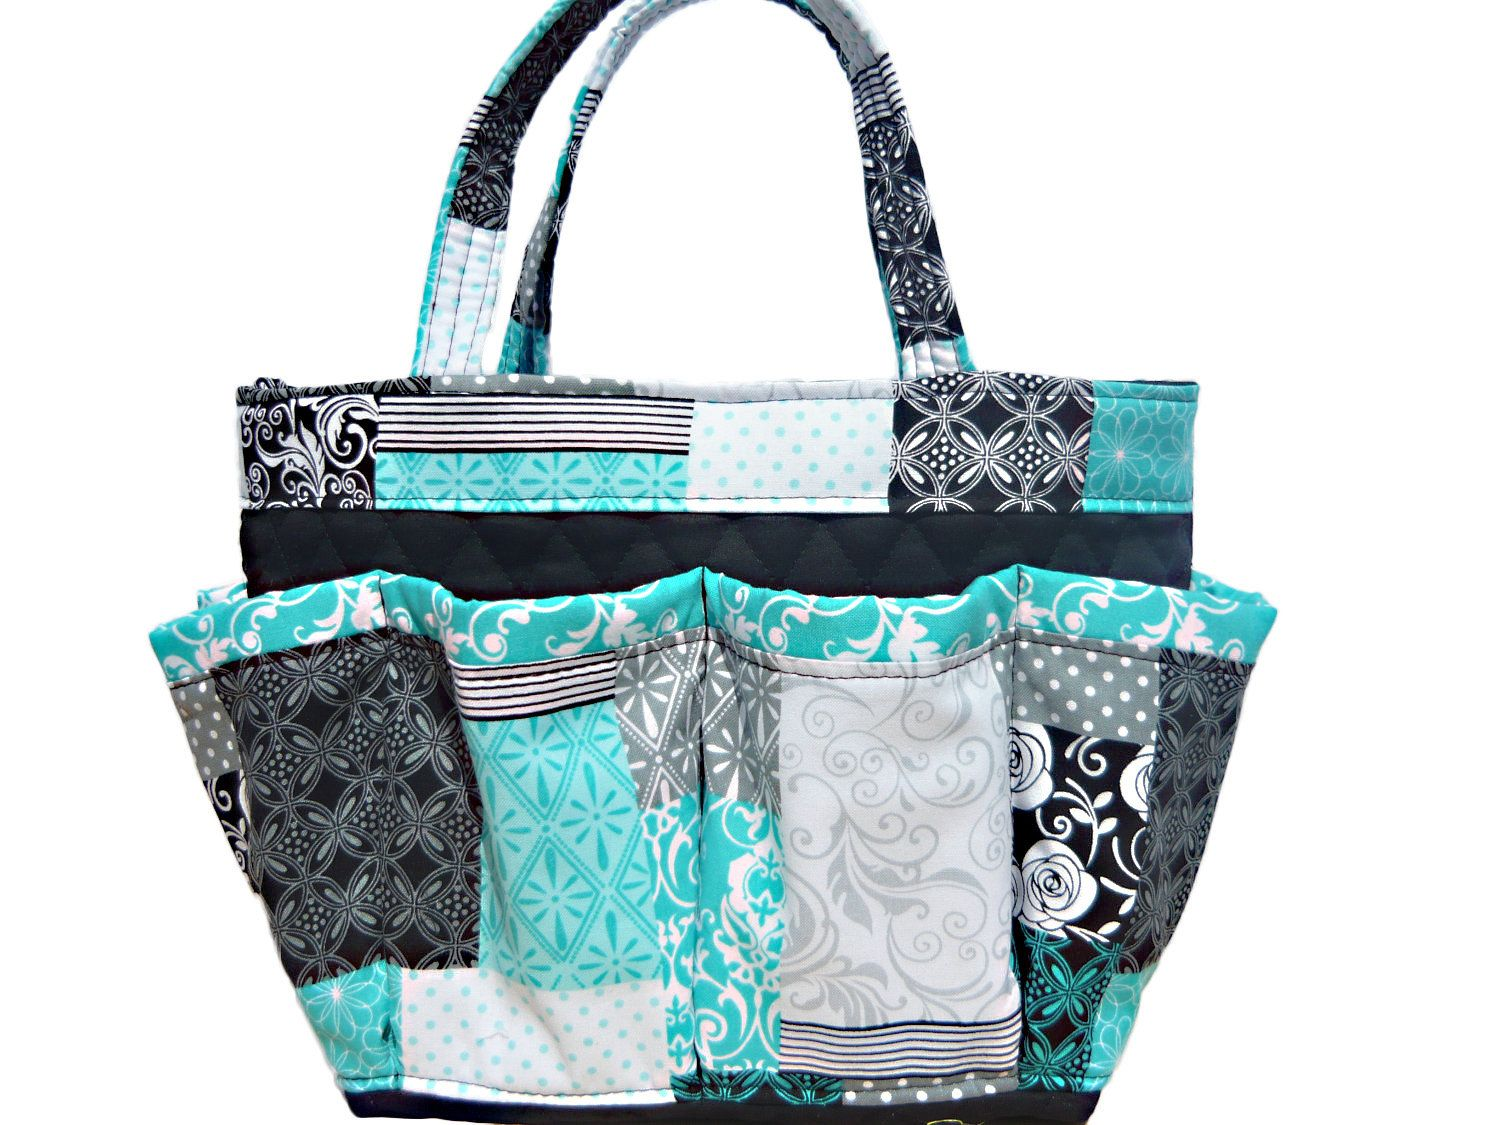 craft organizer bag free bingo tote bag patterns to sew yahoo image search 1597